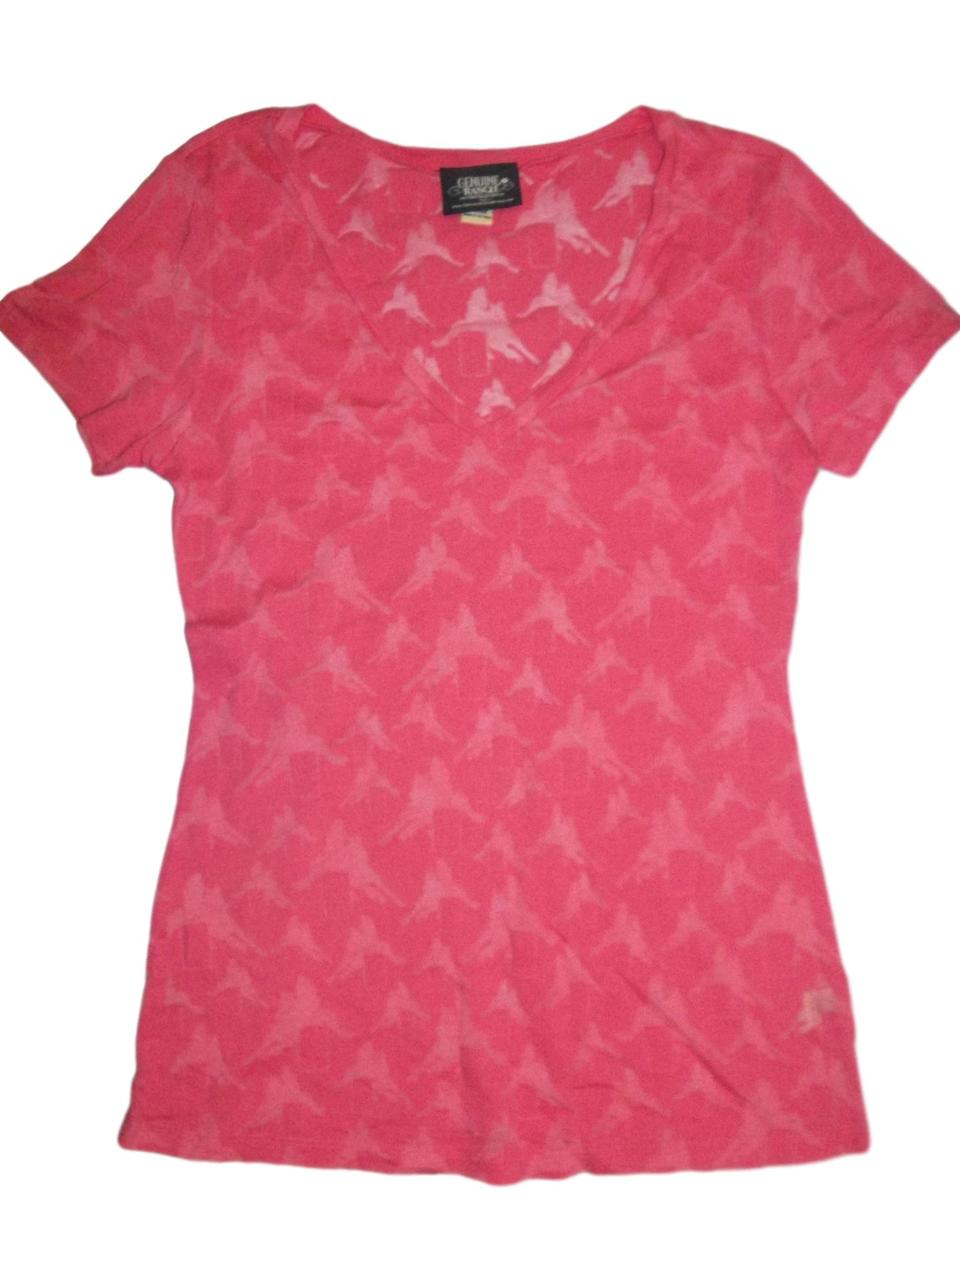 Barrel Racing Pink V Neck